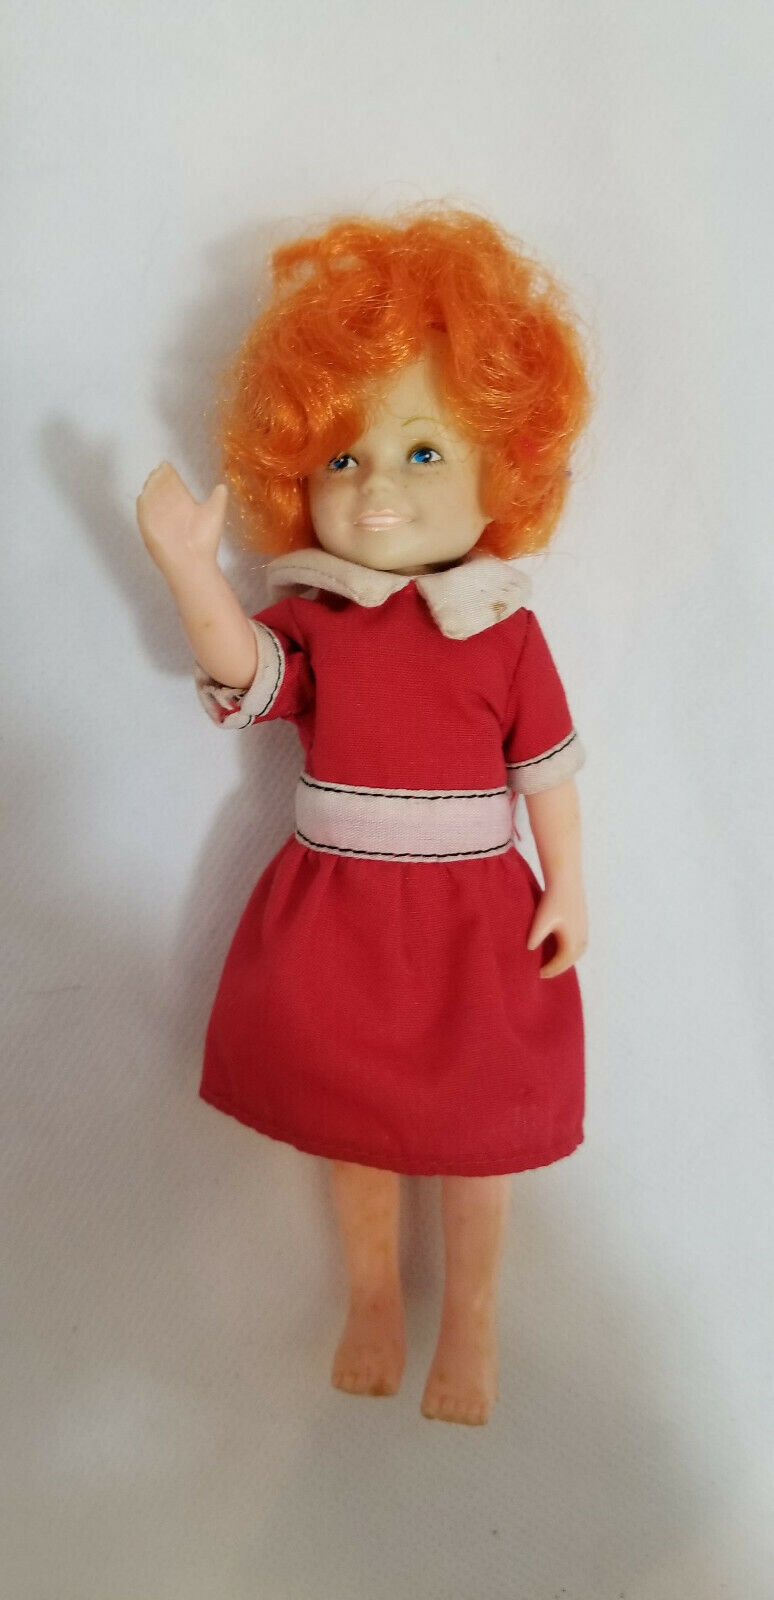 The World of Annie by The World of Annie Annie Knickerbocker Toy Co//Columbia Pictures. 1982 Knickerbocker Little Orphan ANNIE DOLL 6 Tall